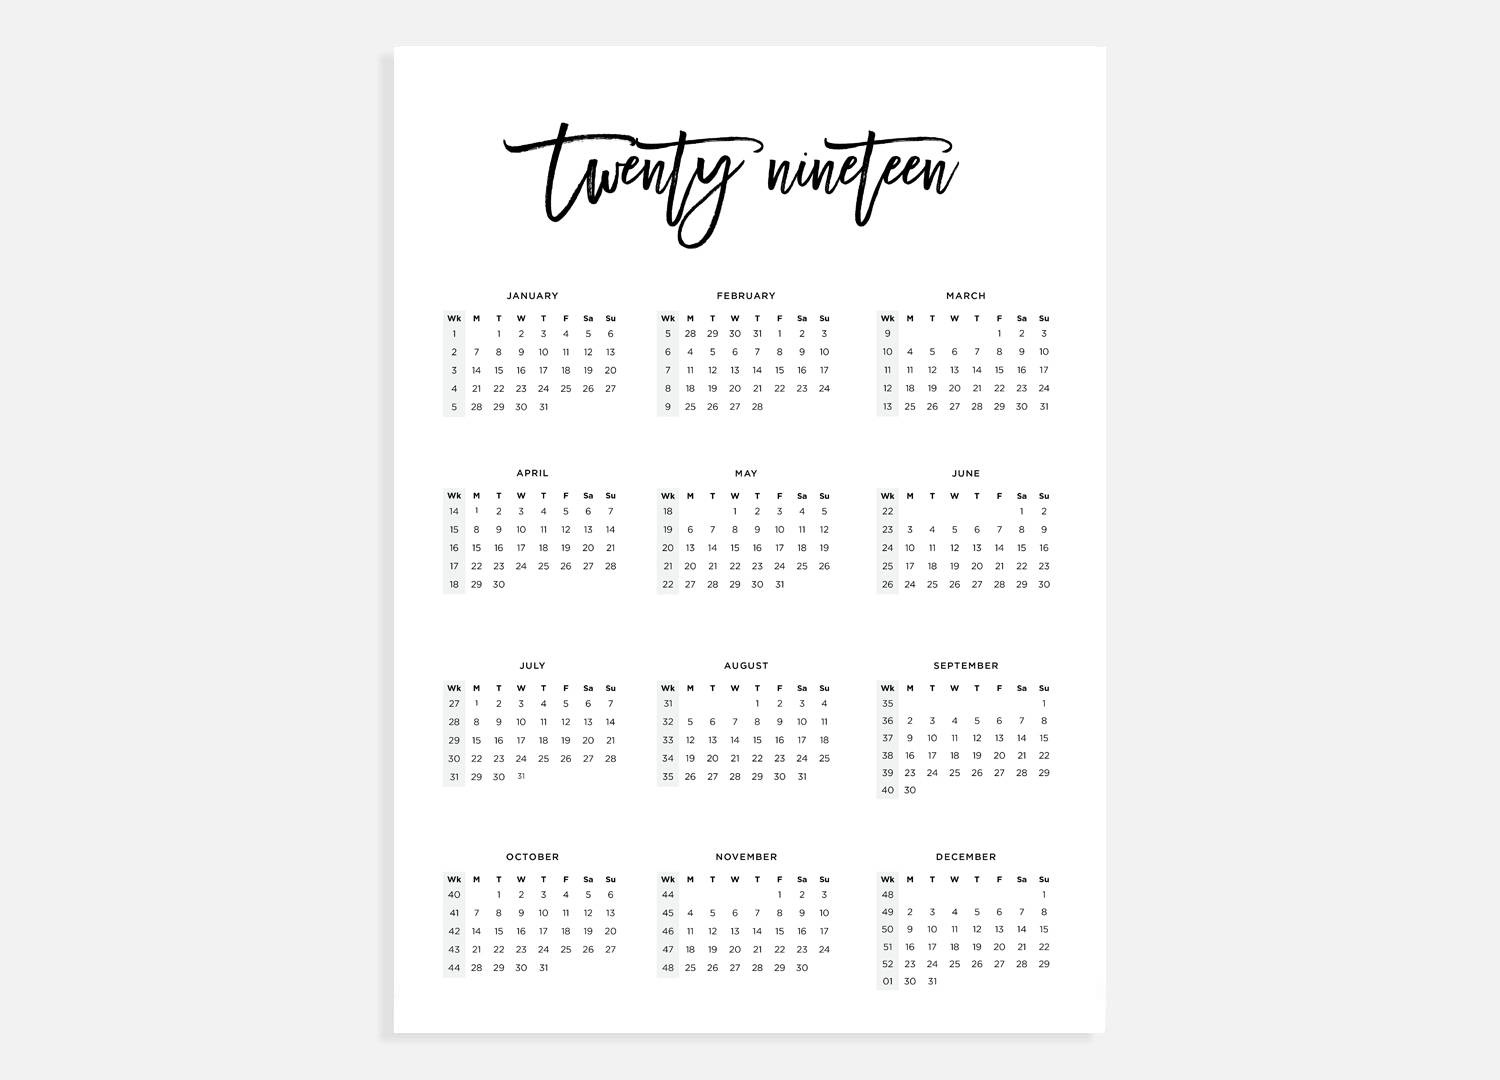 2019, Calendar A3, Calendar With Week Numbers, 2019 Year Calendar, A3  Digital Download Calendar, A3 Calendar, Printable Calendar 2019_A3 Landscape Calendar Printing